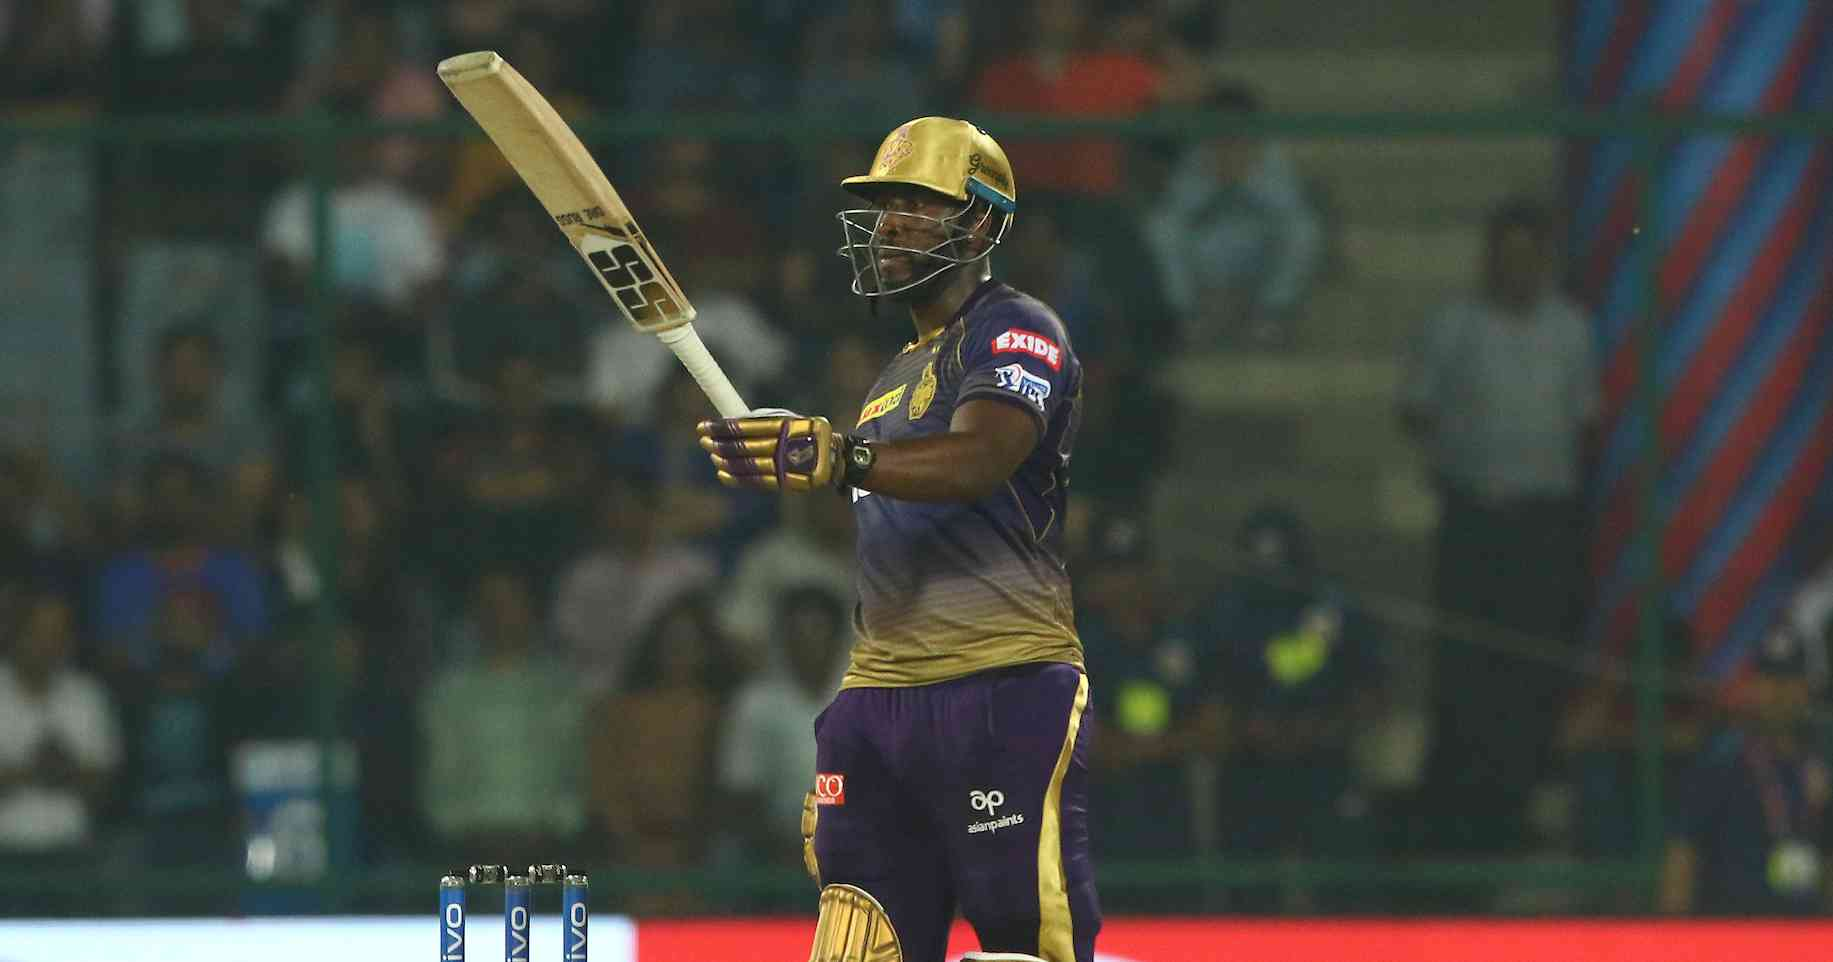 Andre Russell in action during IPL 2019 -- Image credit: Saikat Das / Sportzpics for BCCI